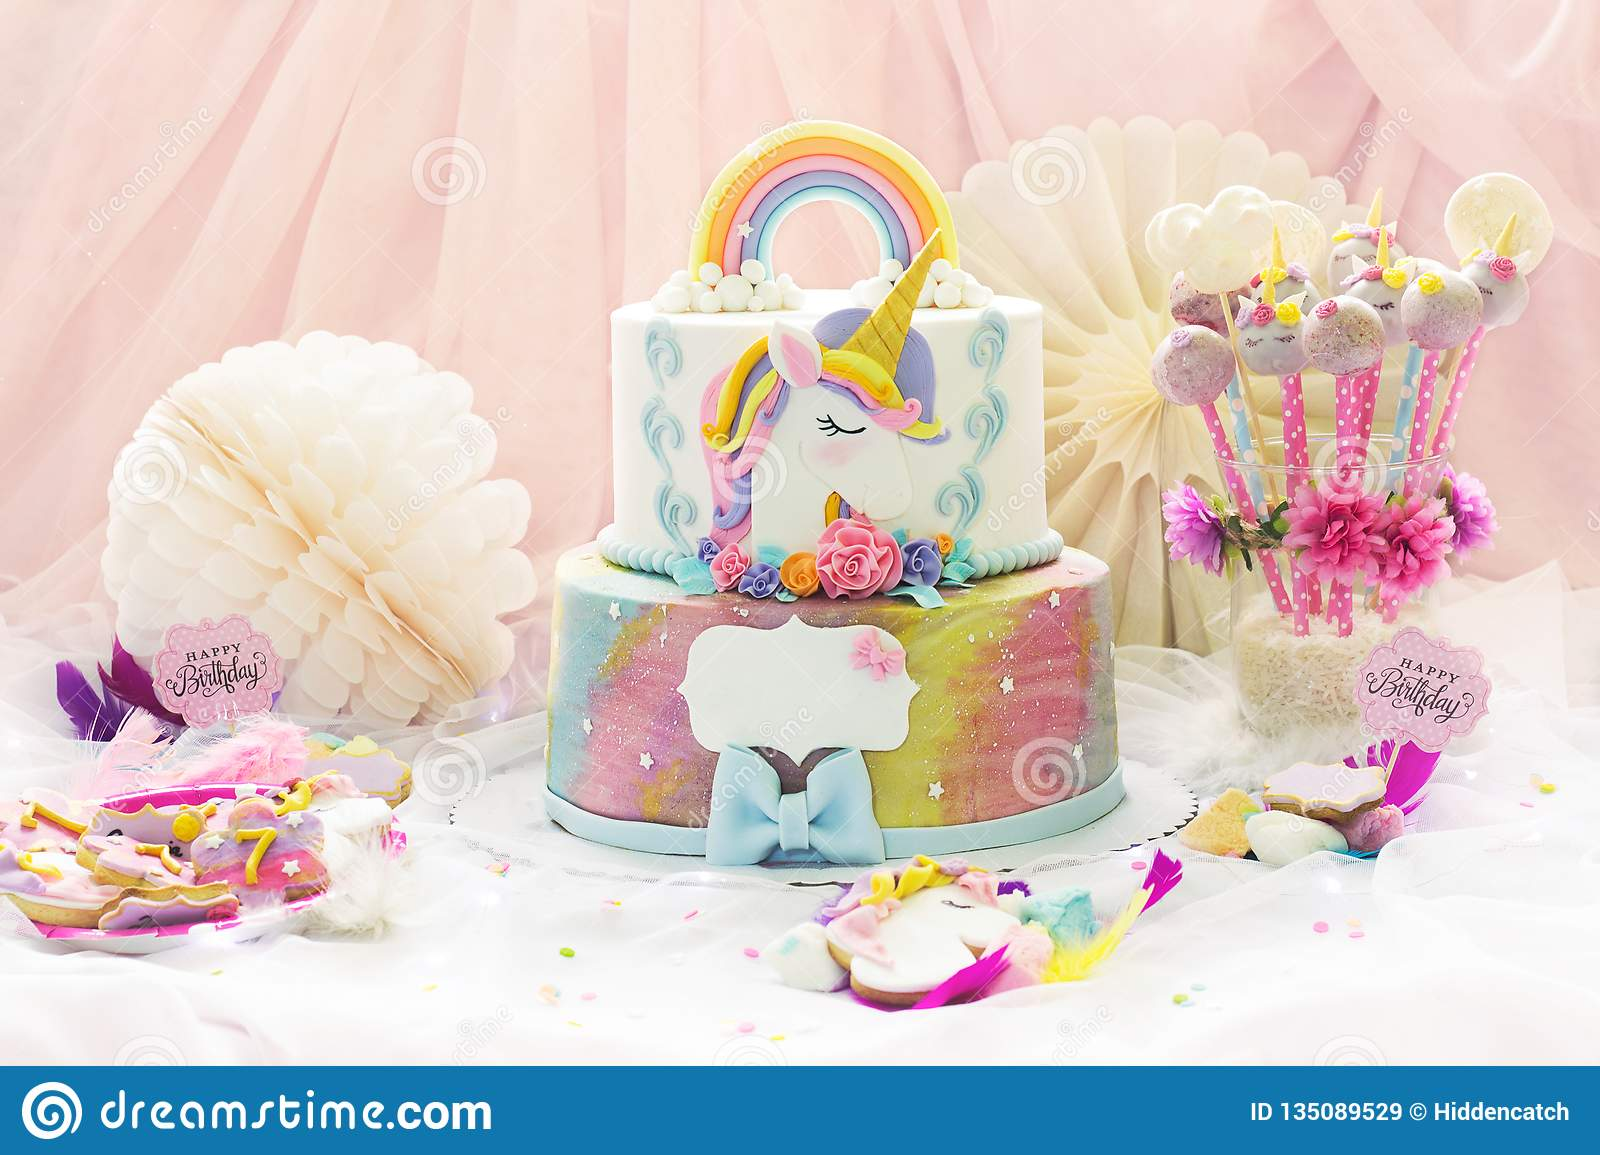 Little girl`s birthday party; dessert table with unicorn cake, cake-pops, sugar cookies and birthday decoration